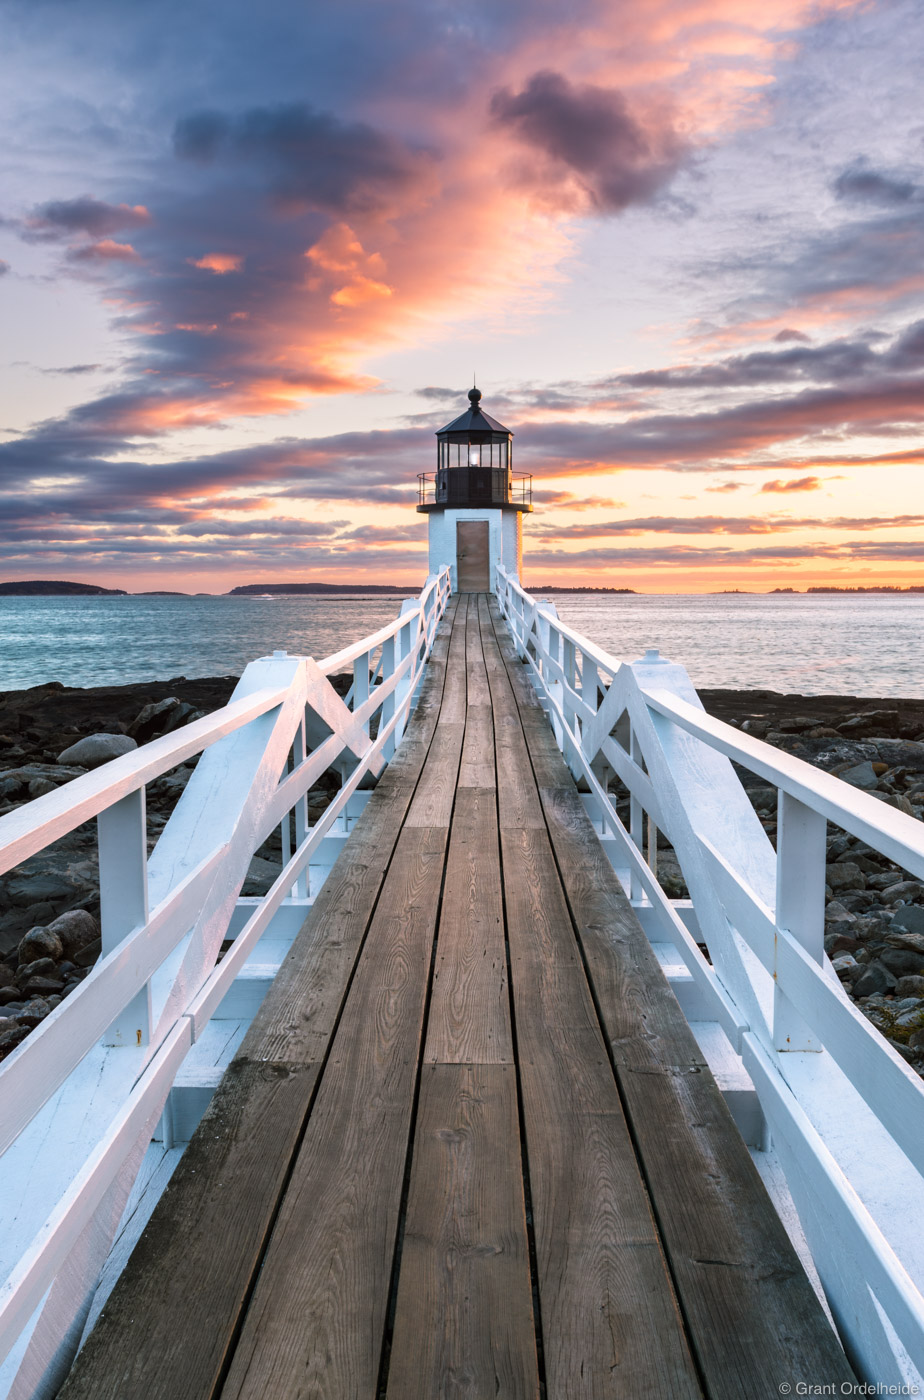 Sunset over the beautiful Marshall Point Lighthouse near Port Clyde, Maine.